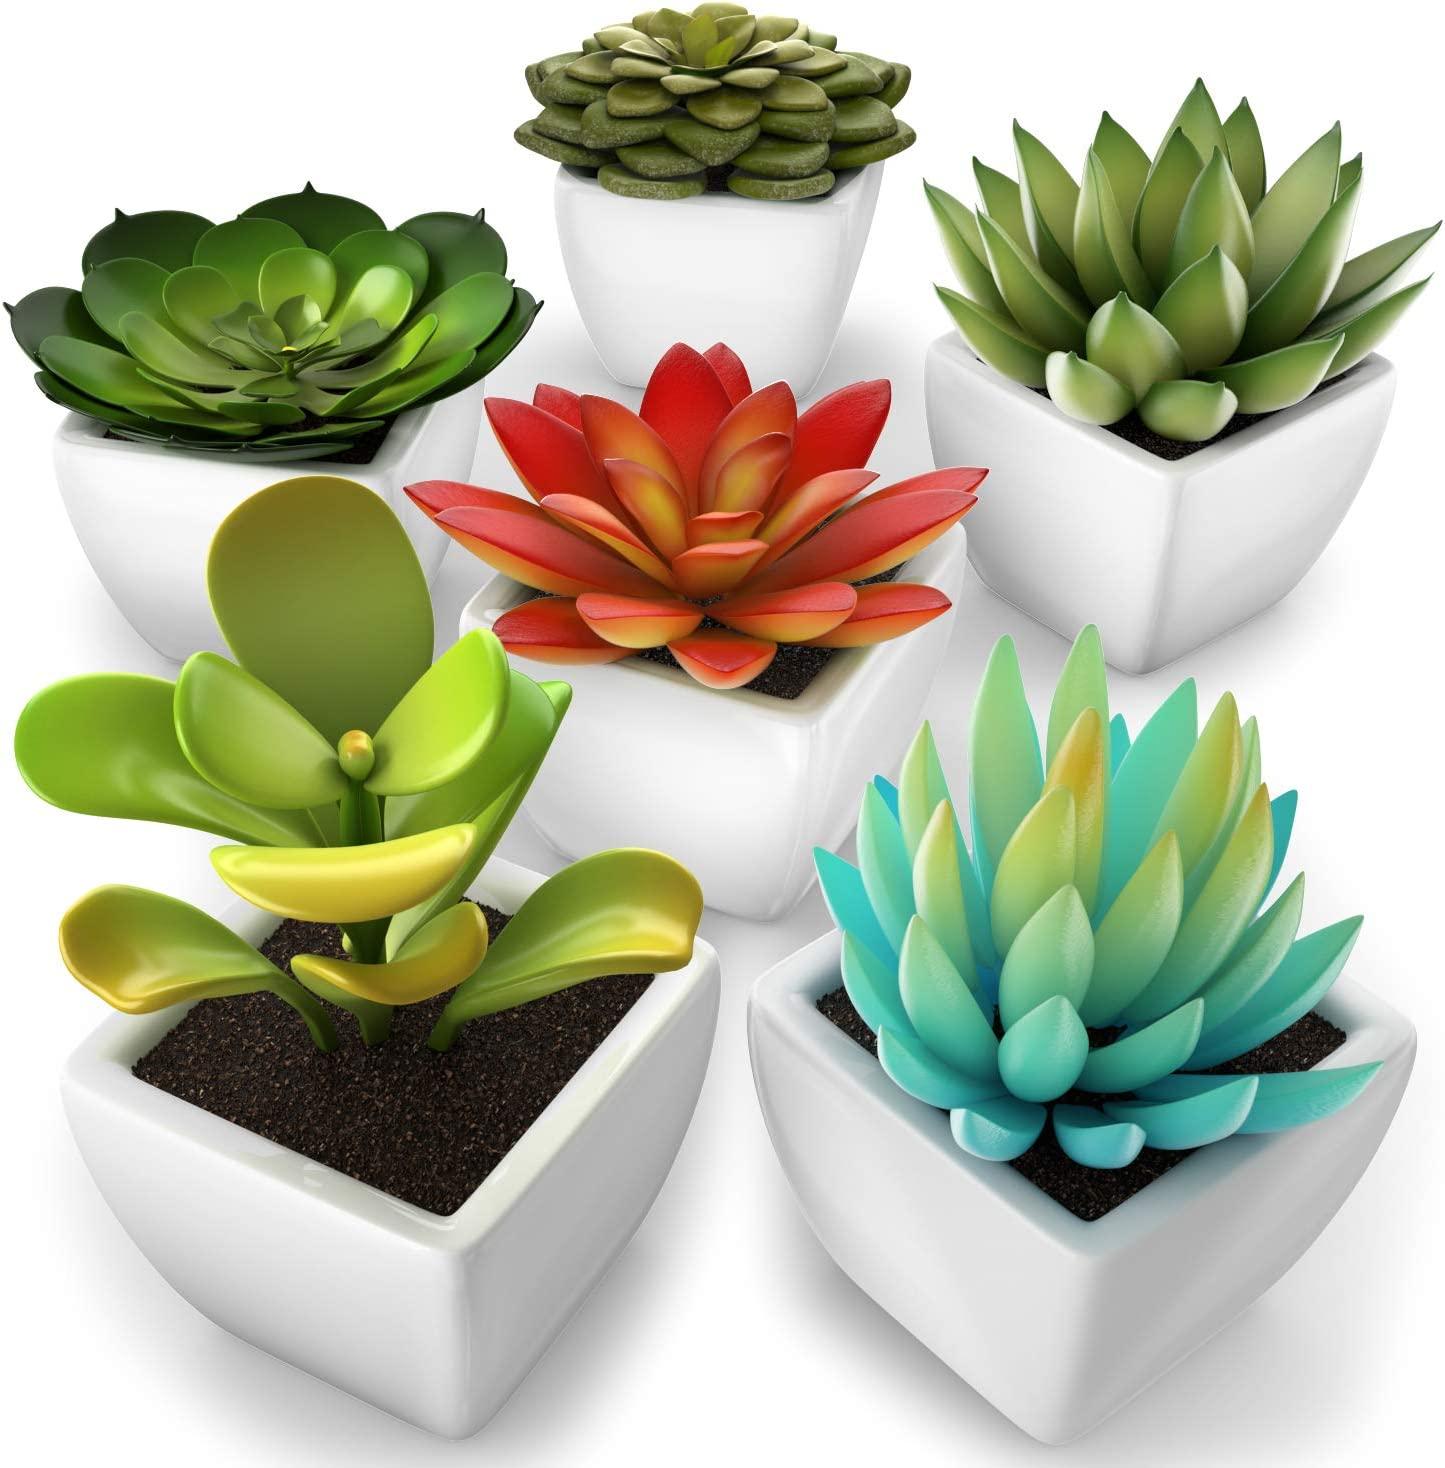 kdelicate Artificial Succulent Assorted Decorative Faux Succulent Fake Plants with White Ceramic Pots -Pack of 6